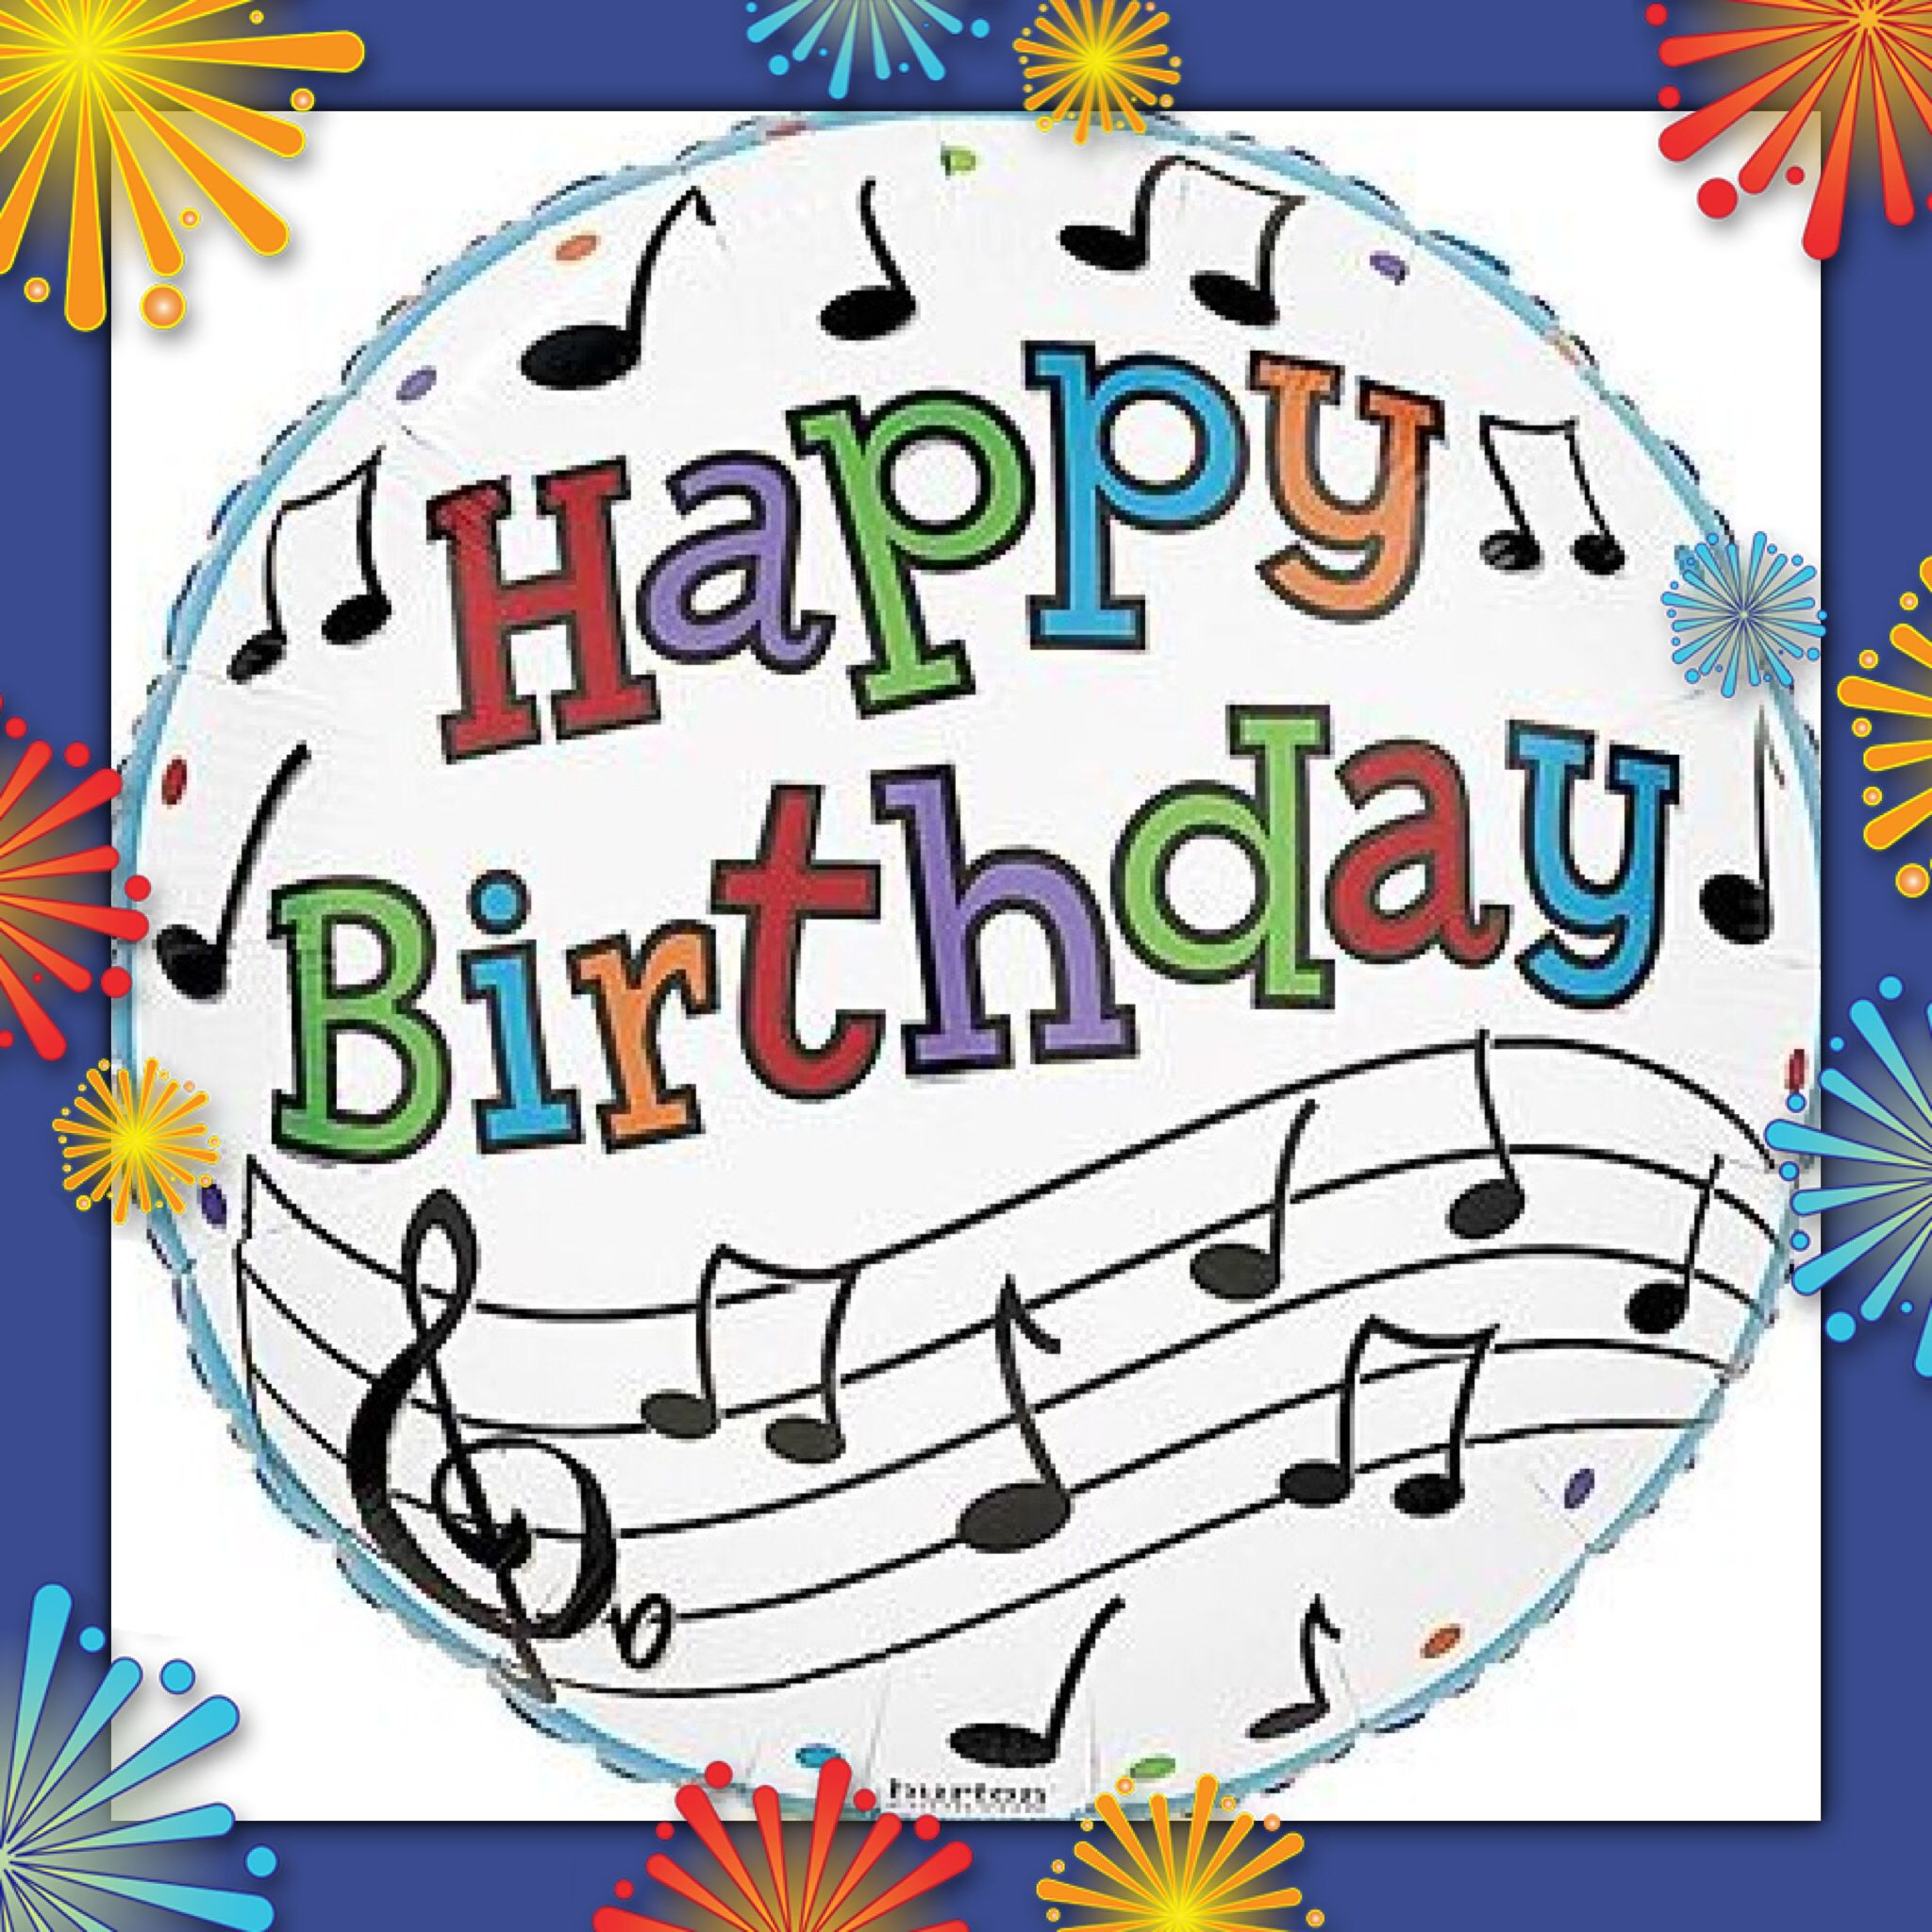 free birthday cards for facebook friends | Happy birthday musical ...